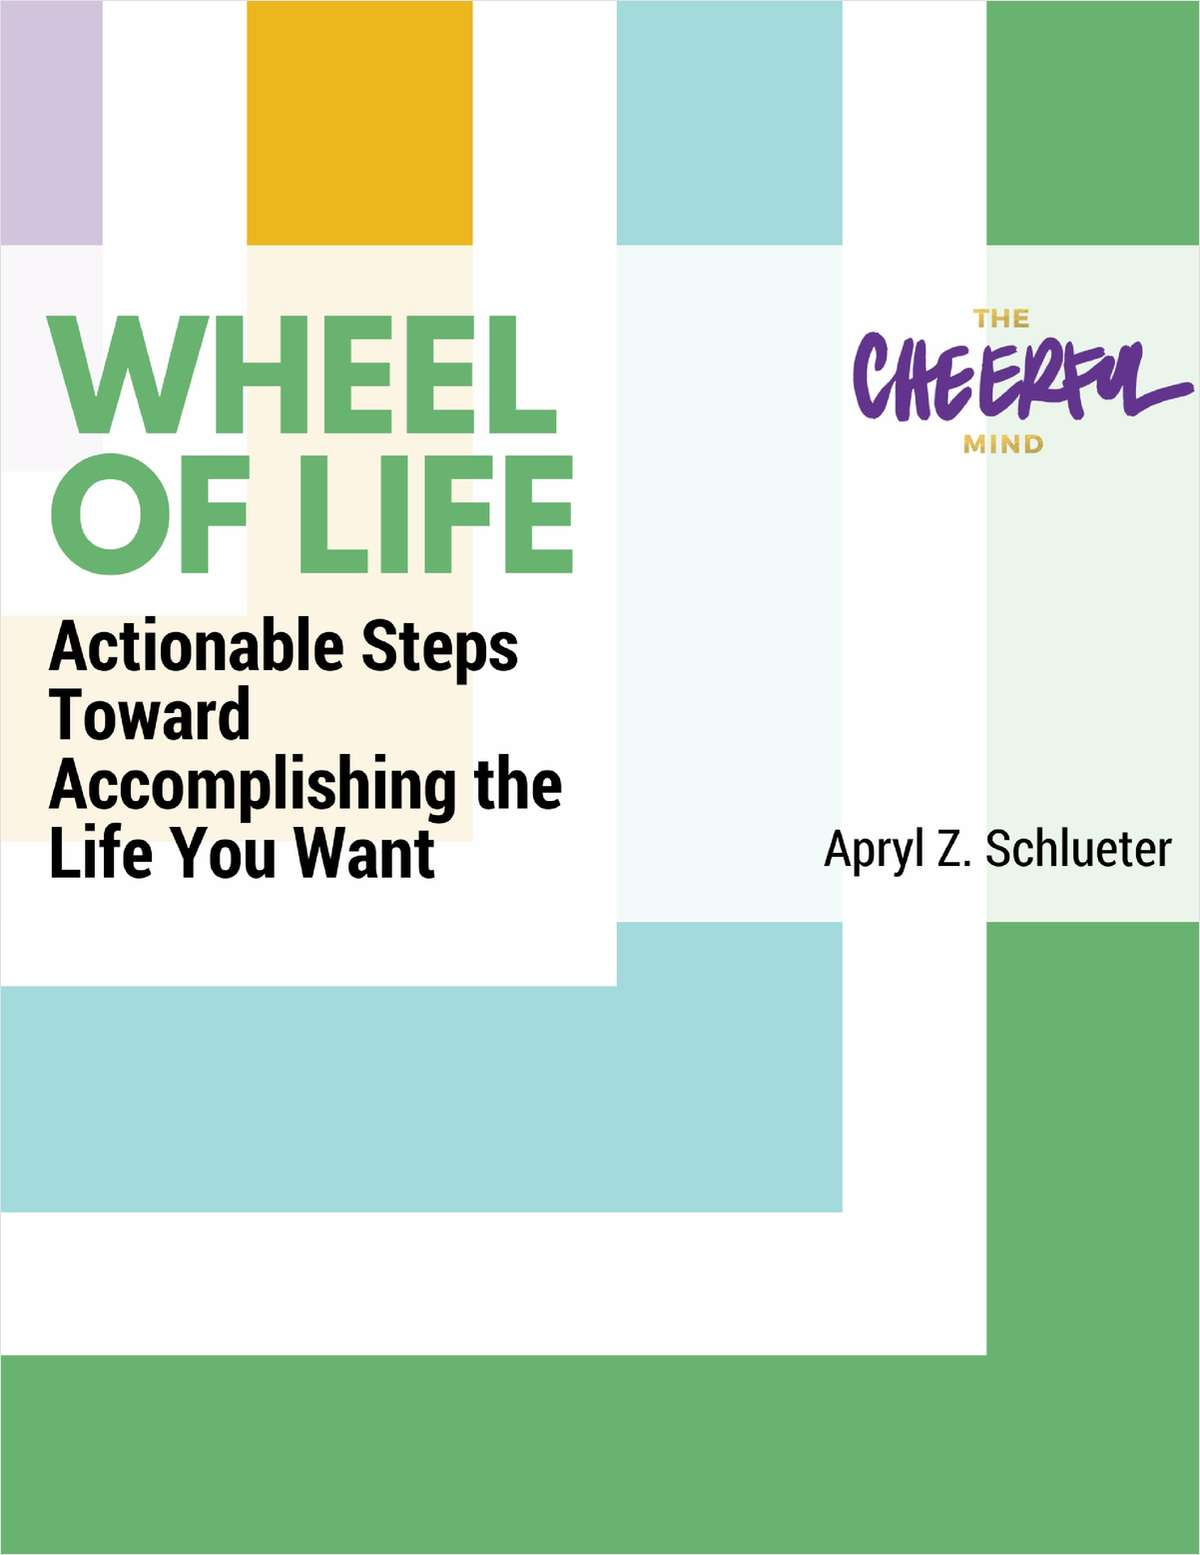 Wheel of Life - Actionable Steps Toward Accomplishing the Life You Want